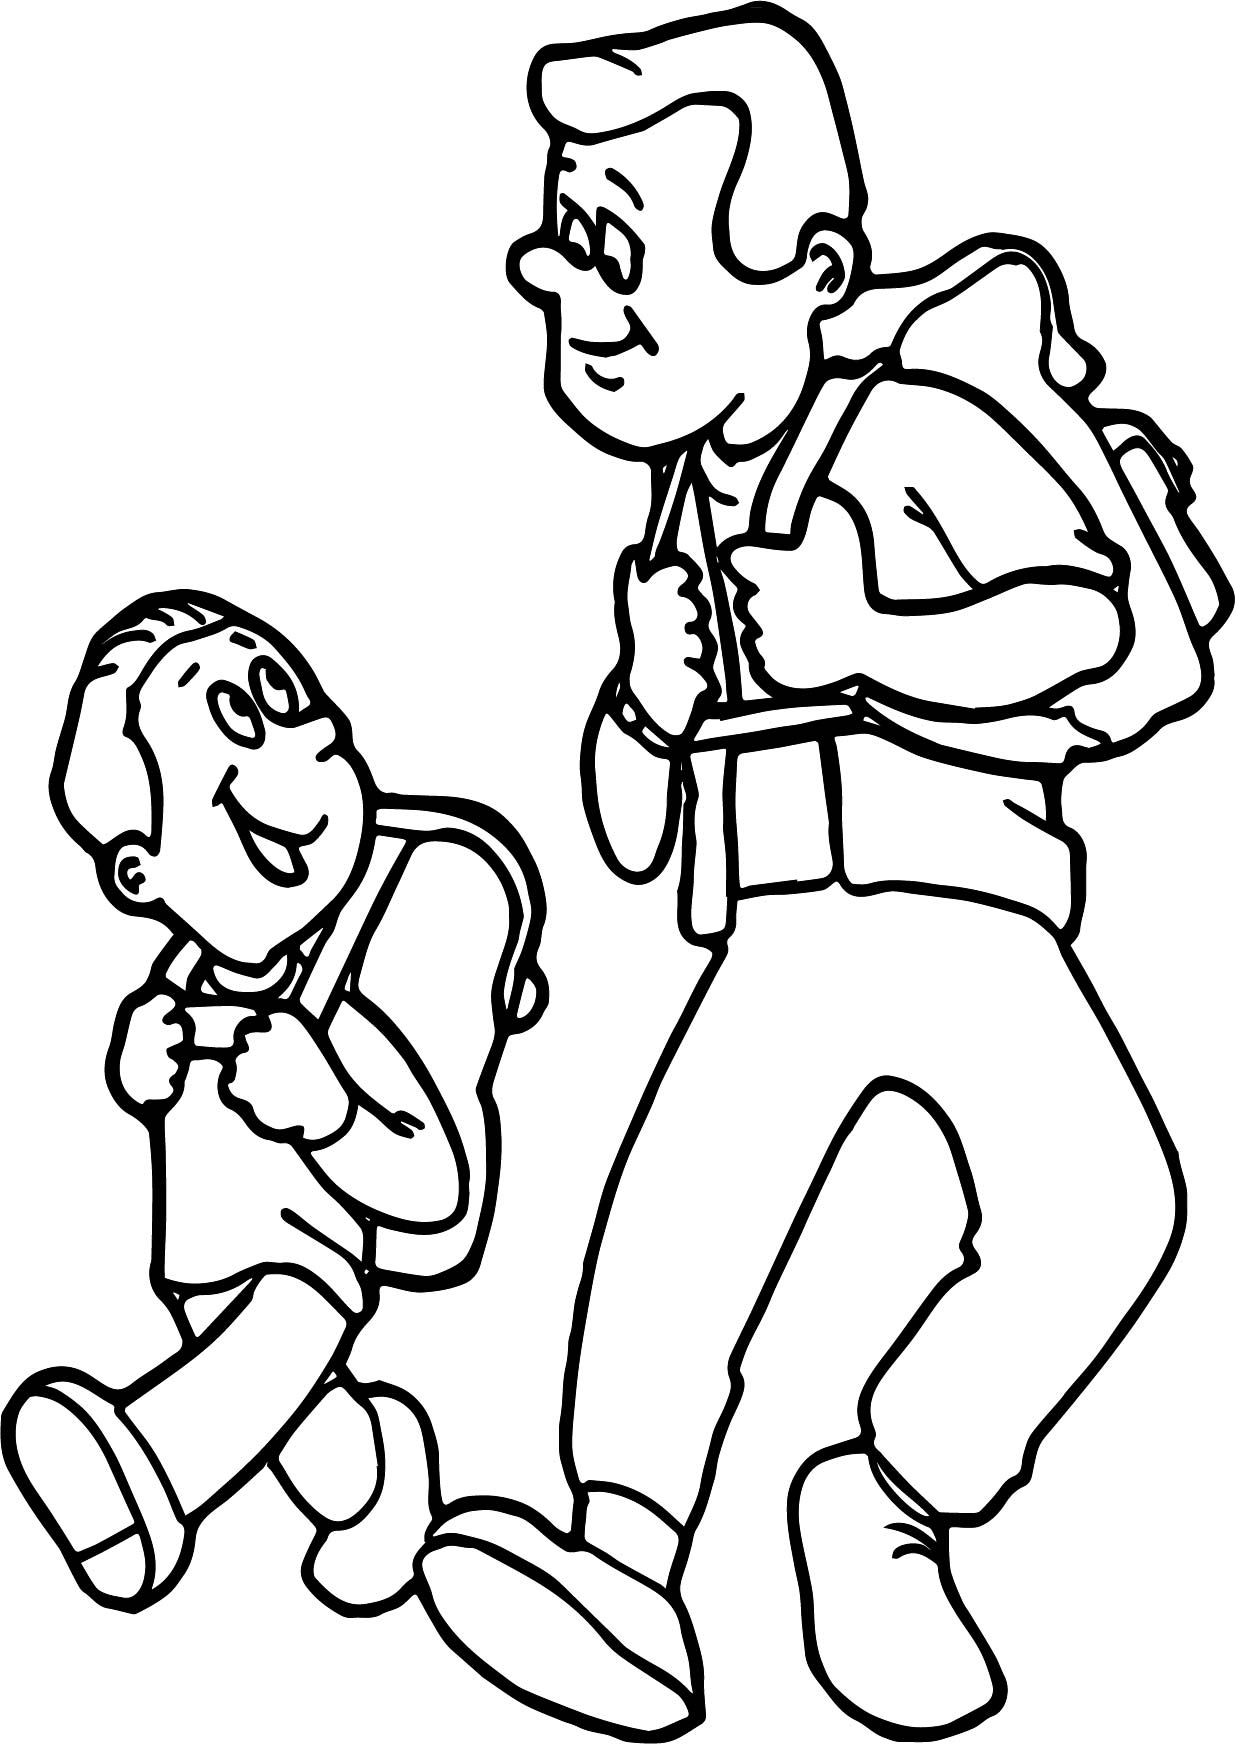 Father Son Camping Coloring Page